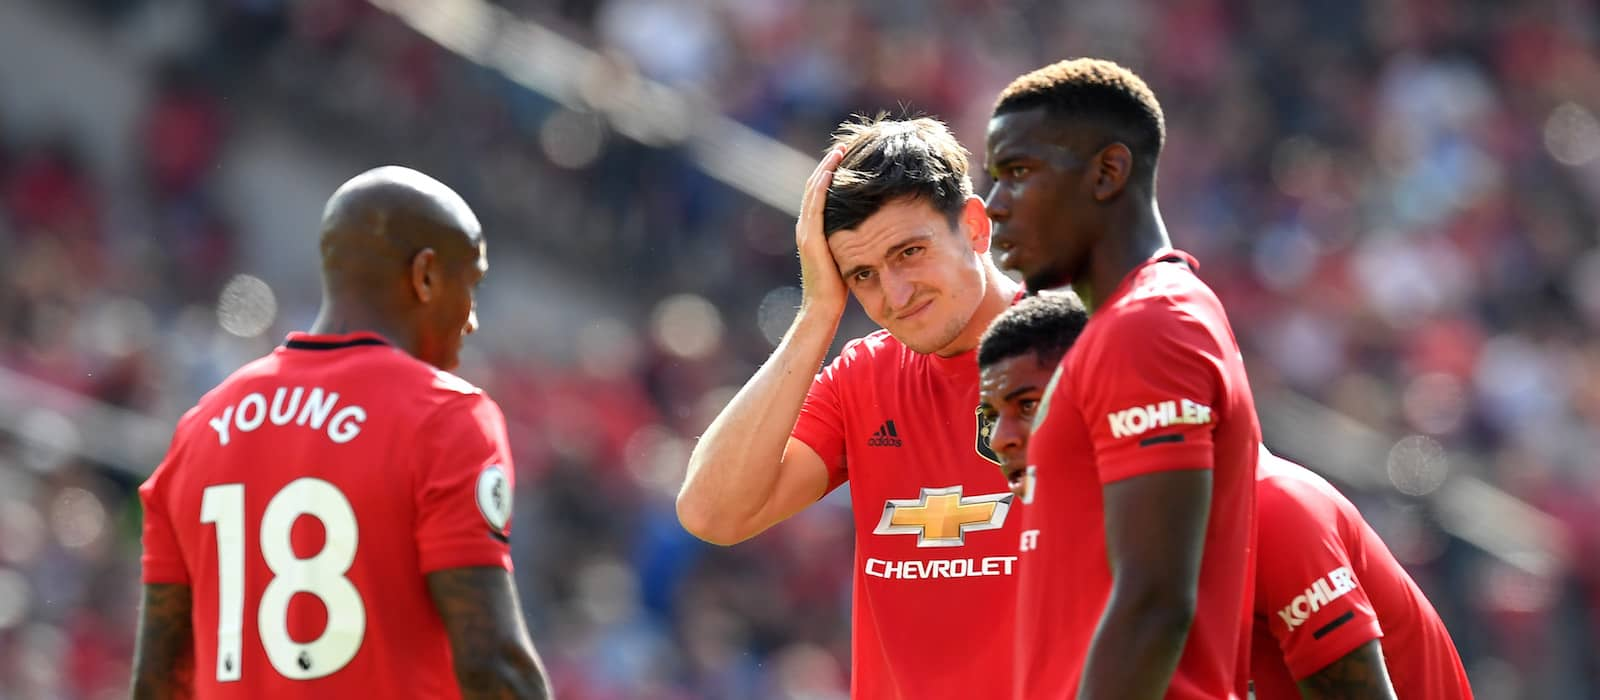 Manchester United fans react to 2-1 loss to Crystal Palace